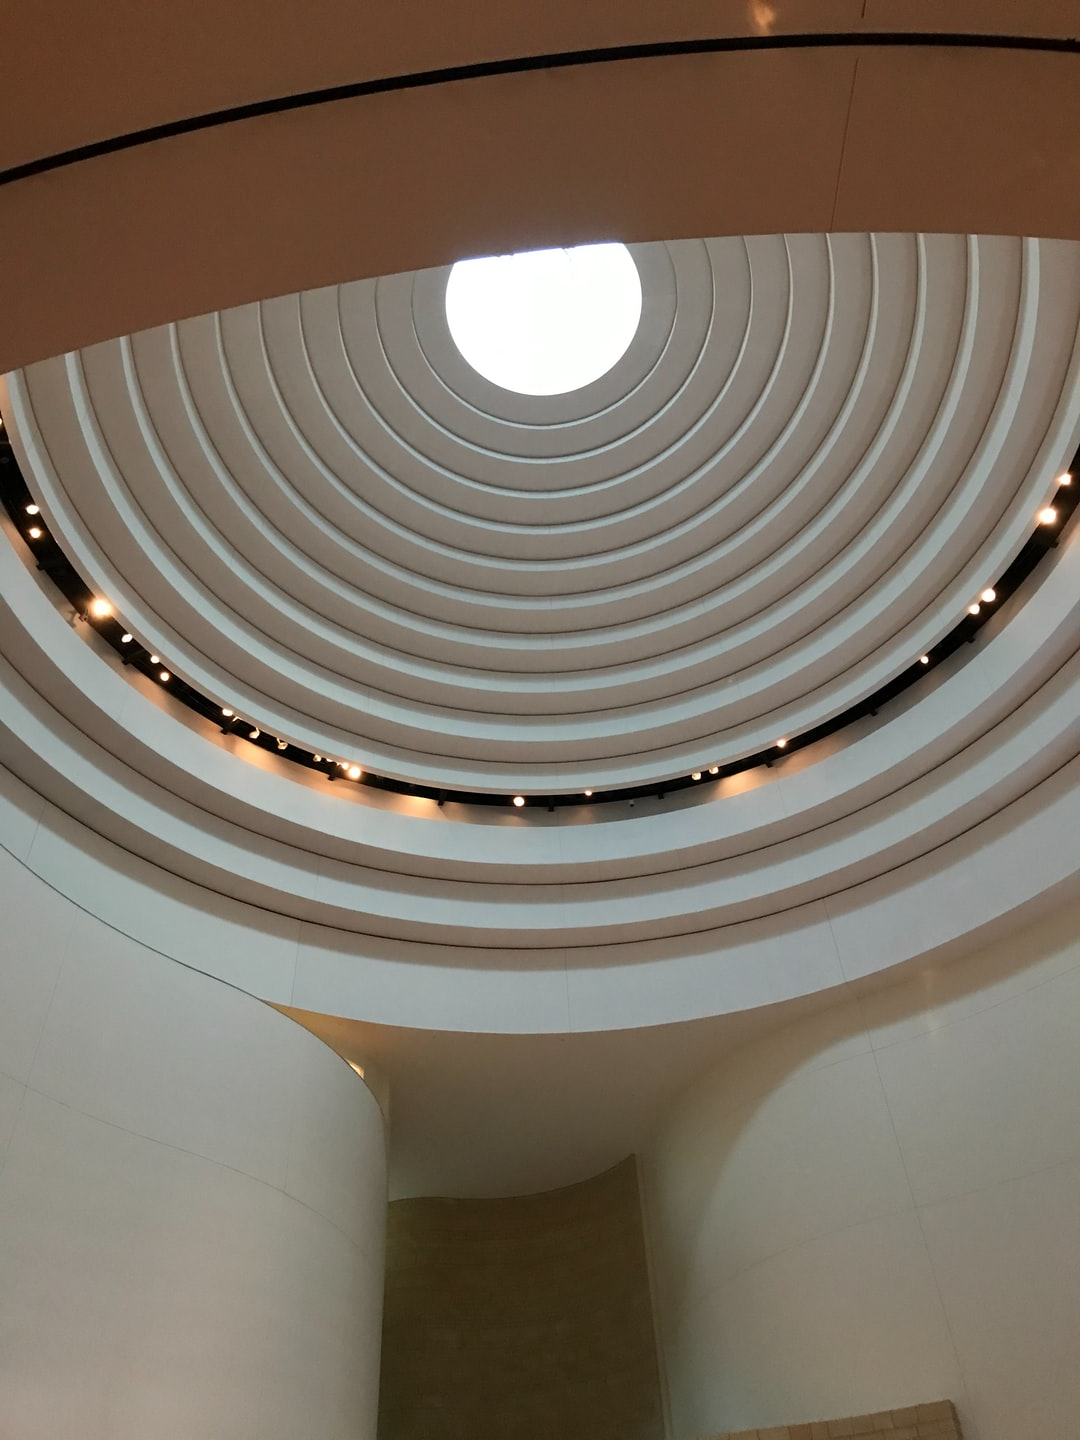 Smithsonian's National Museum of the American Indian, Washington, DC